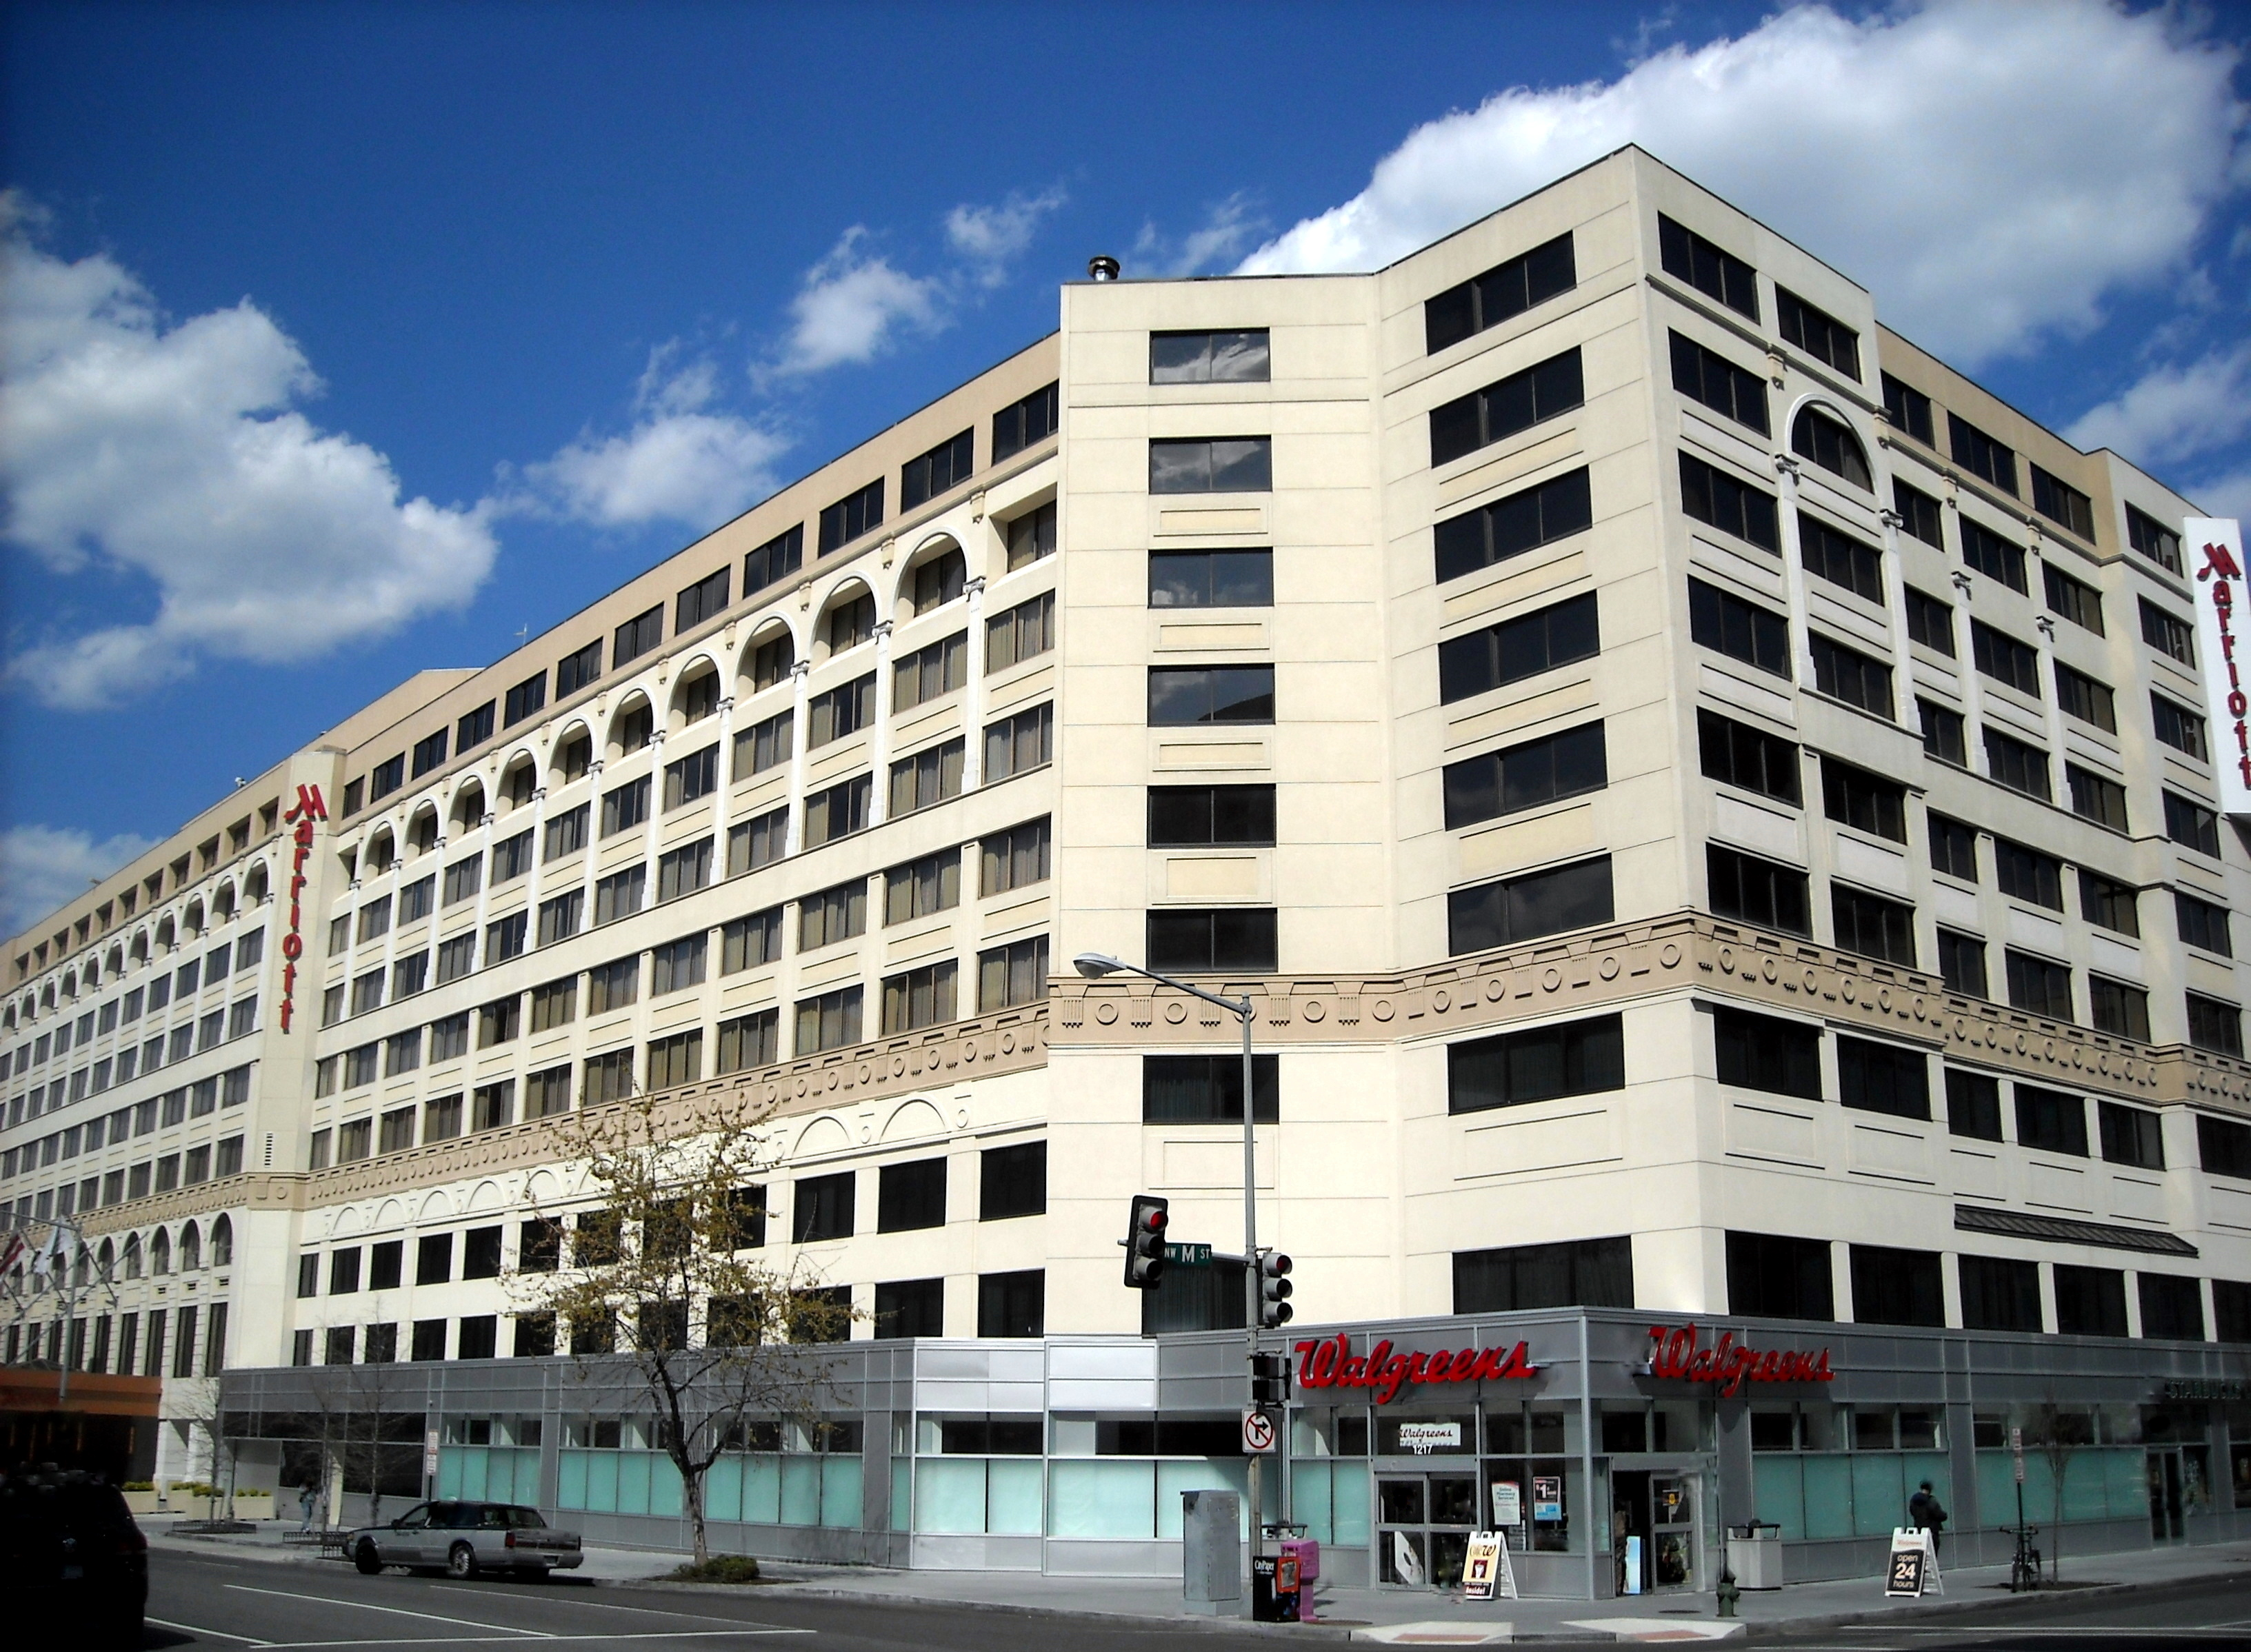 """A Walgreens """"corner drugstore"""", located in a Marriott street-level retail space, on the corner of a heavily trafficked intersection in Washington, D.C"""